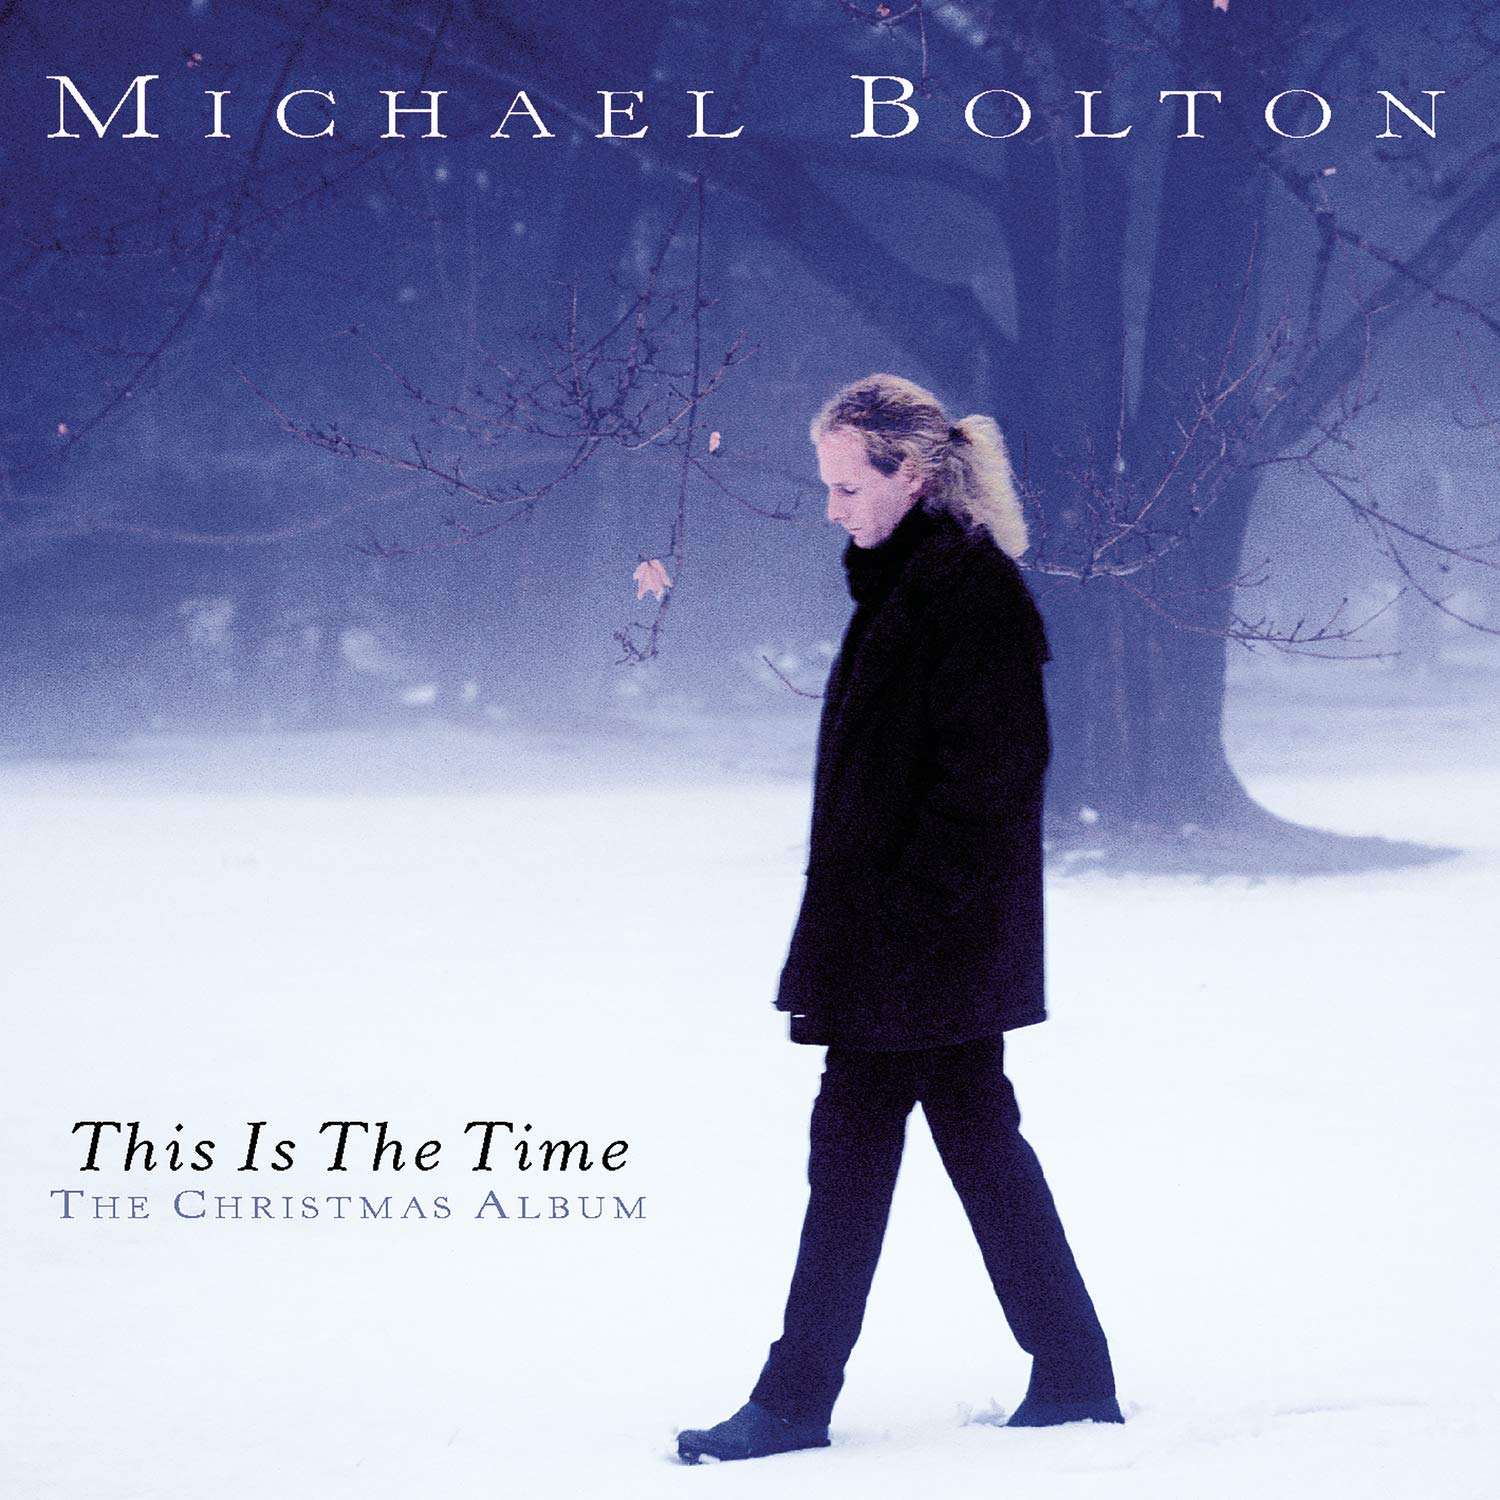 Michael Bolton - CD This Is The Time - The Christmas Album